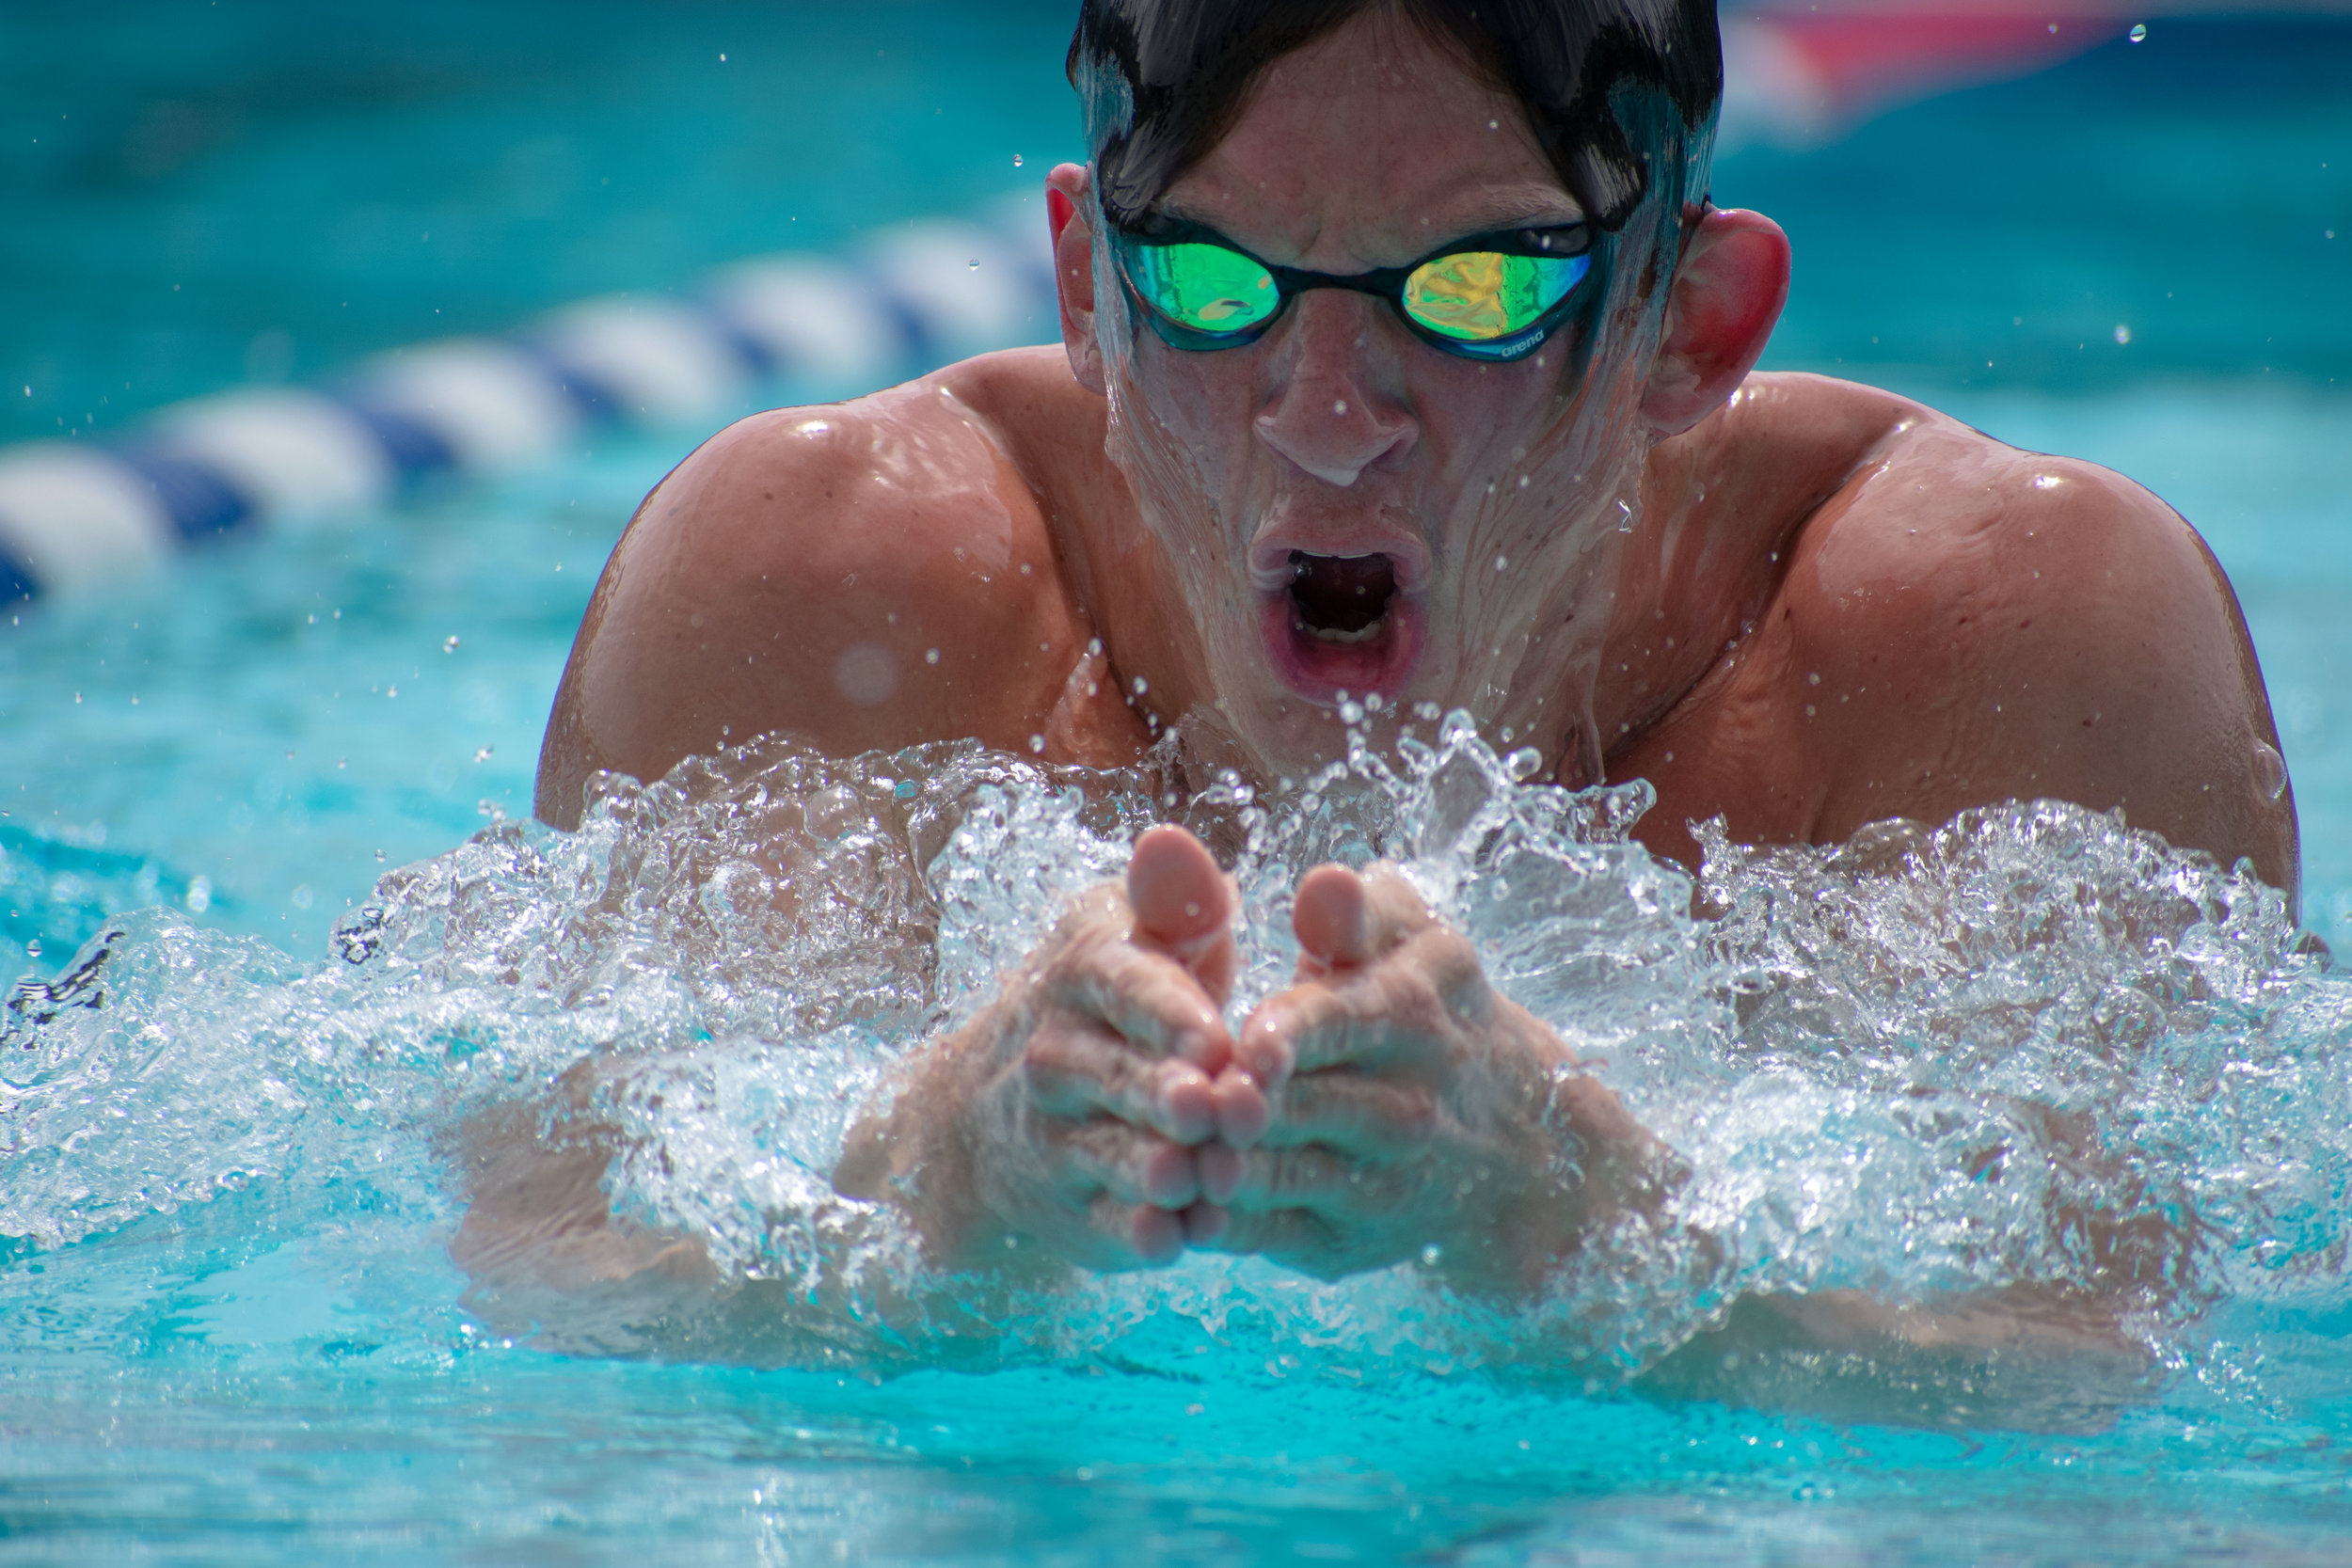 Martin Berggren practices his breaststroke during practice on Tuesday, April 24, 2018 at the Santa Monica Swim Center in Santa Monica, California. Berggren will be headed to the CCCAA Swim and Dive State Championships, which will be held from Monday, May 3 to Saturday, May 6 to swim the 100 and 200-yard breaststroke. (Ethan Lauren/Corsair Photo)